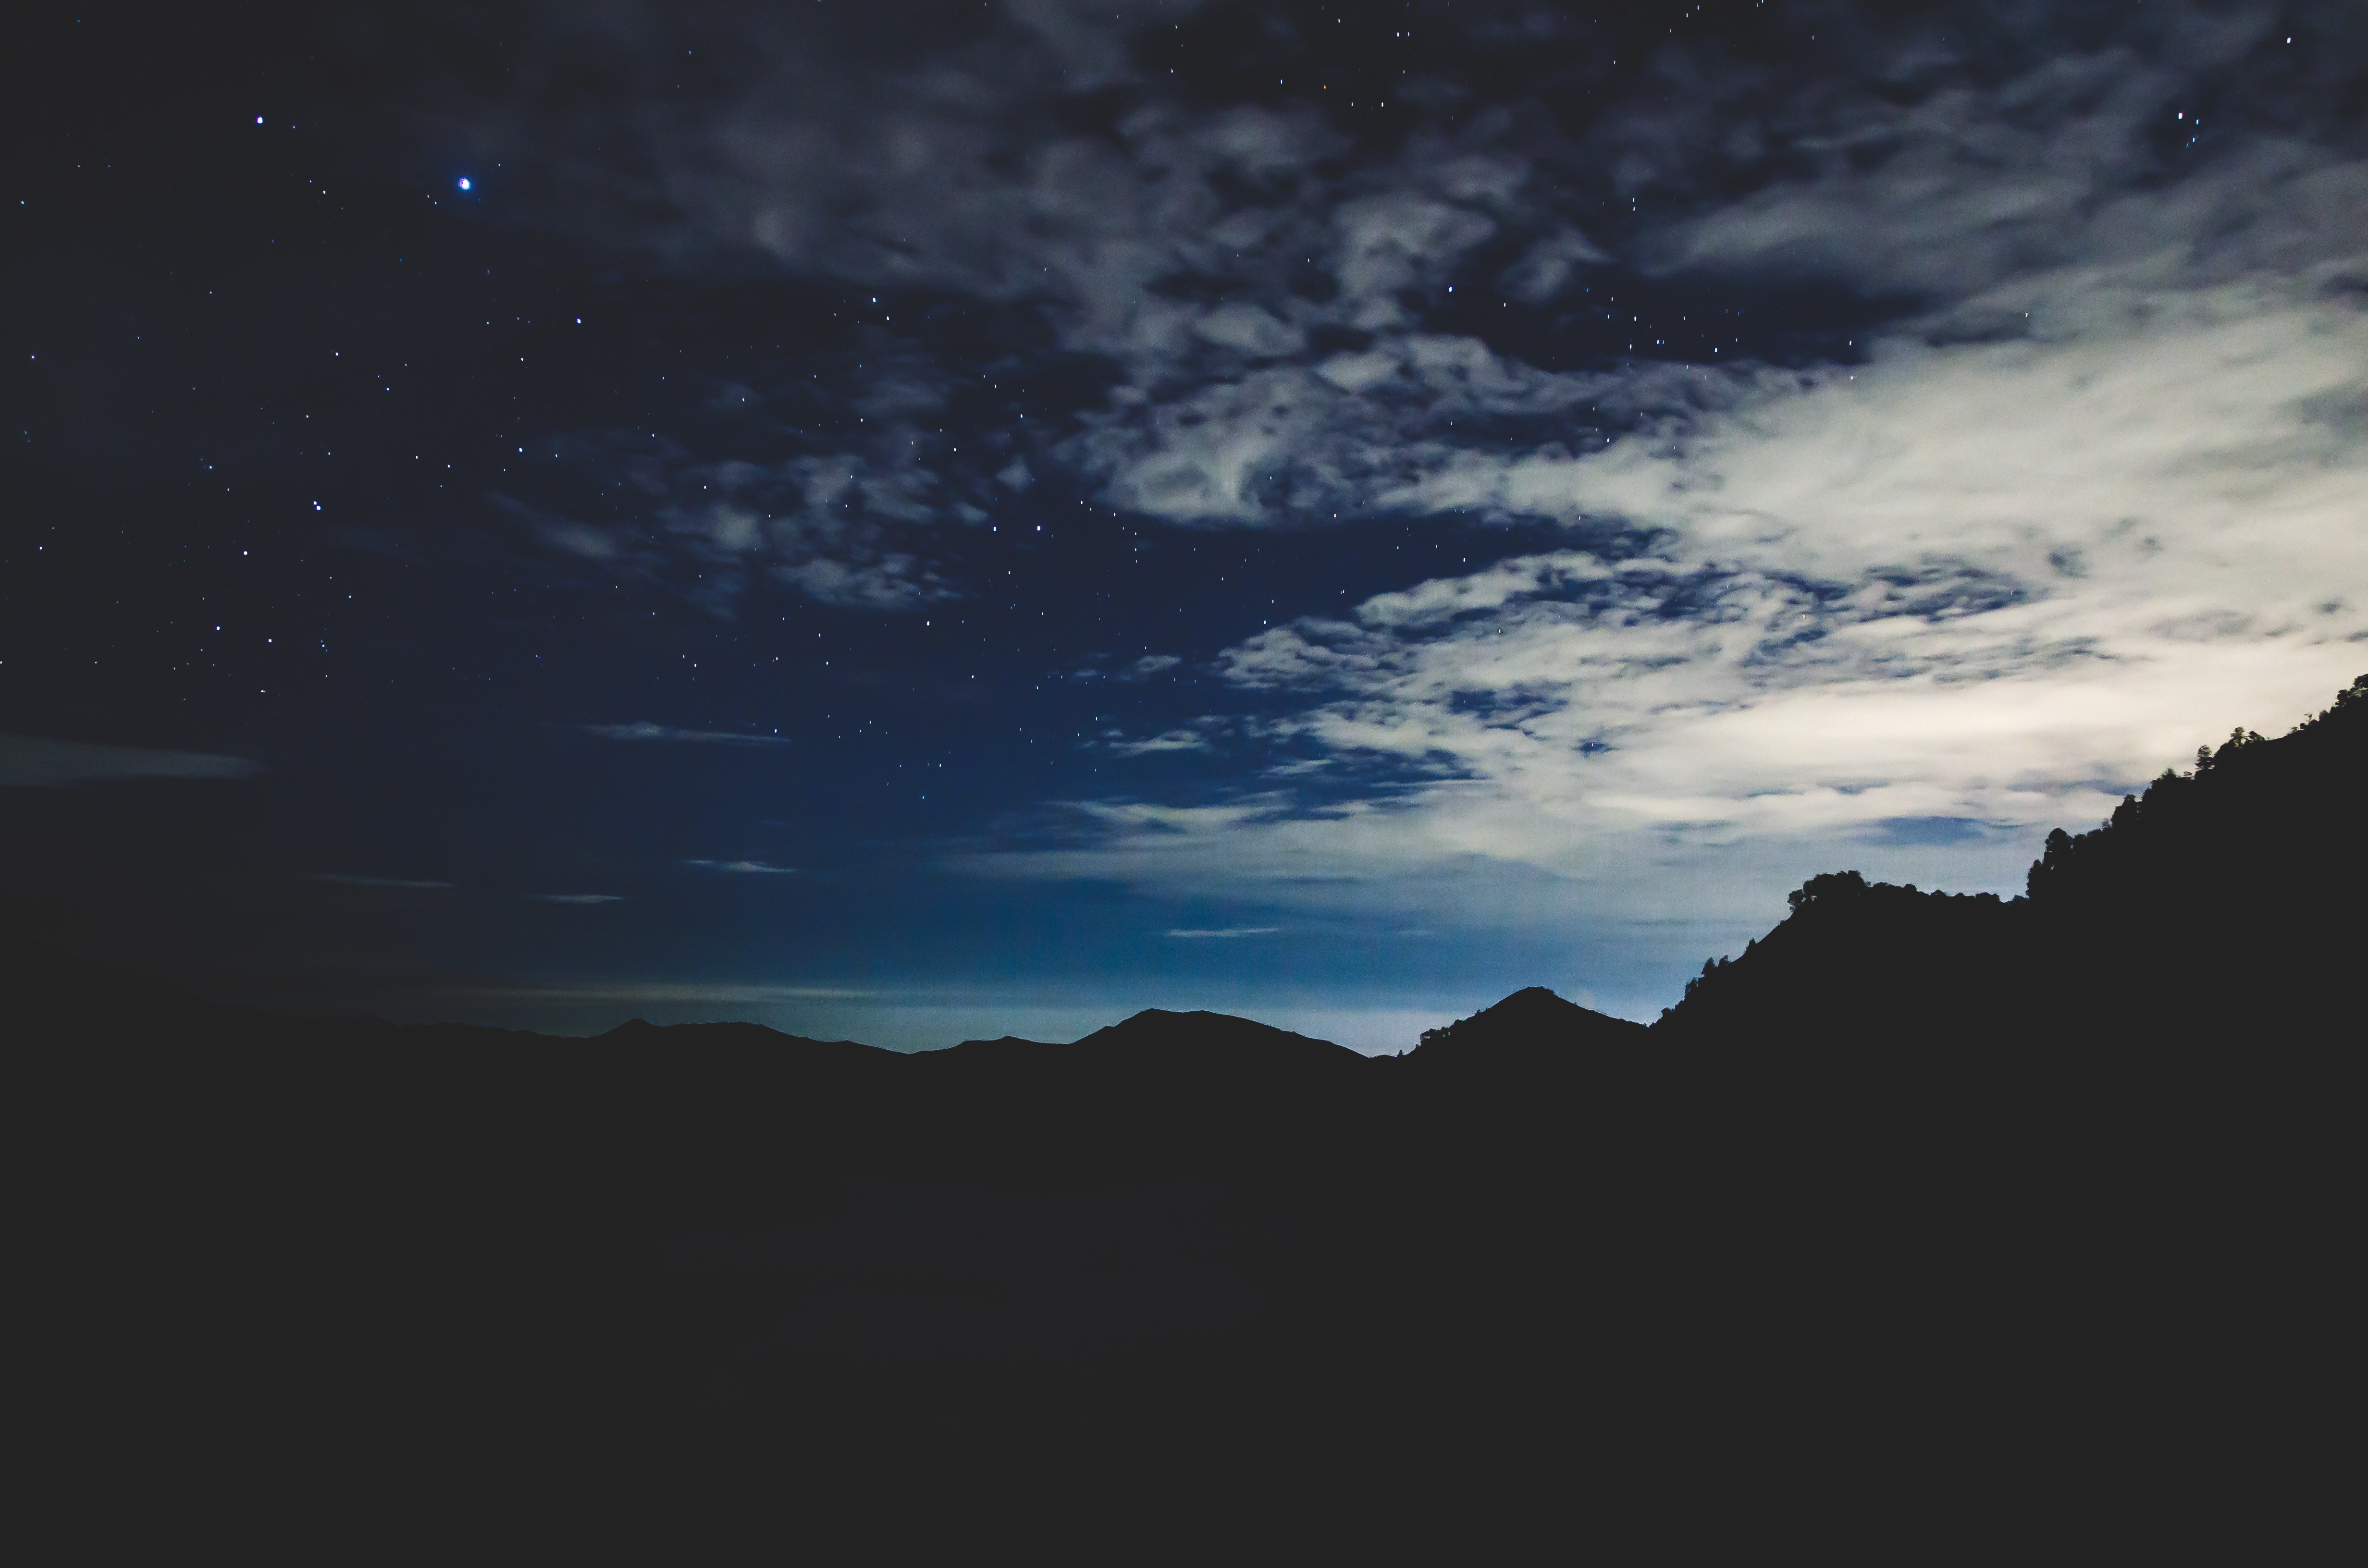 117915 download wallpaper Dark, Night, Sky, Mountains, Stars screensavers and pictures for free